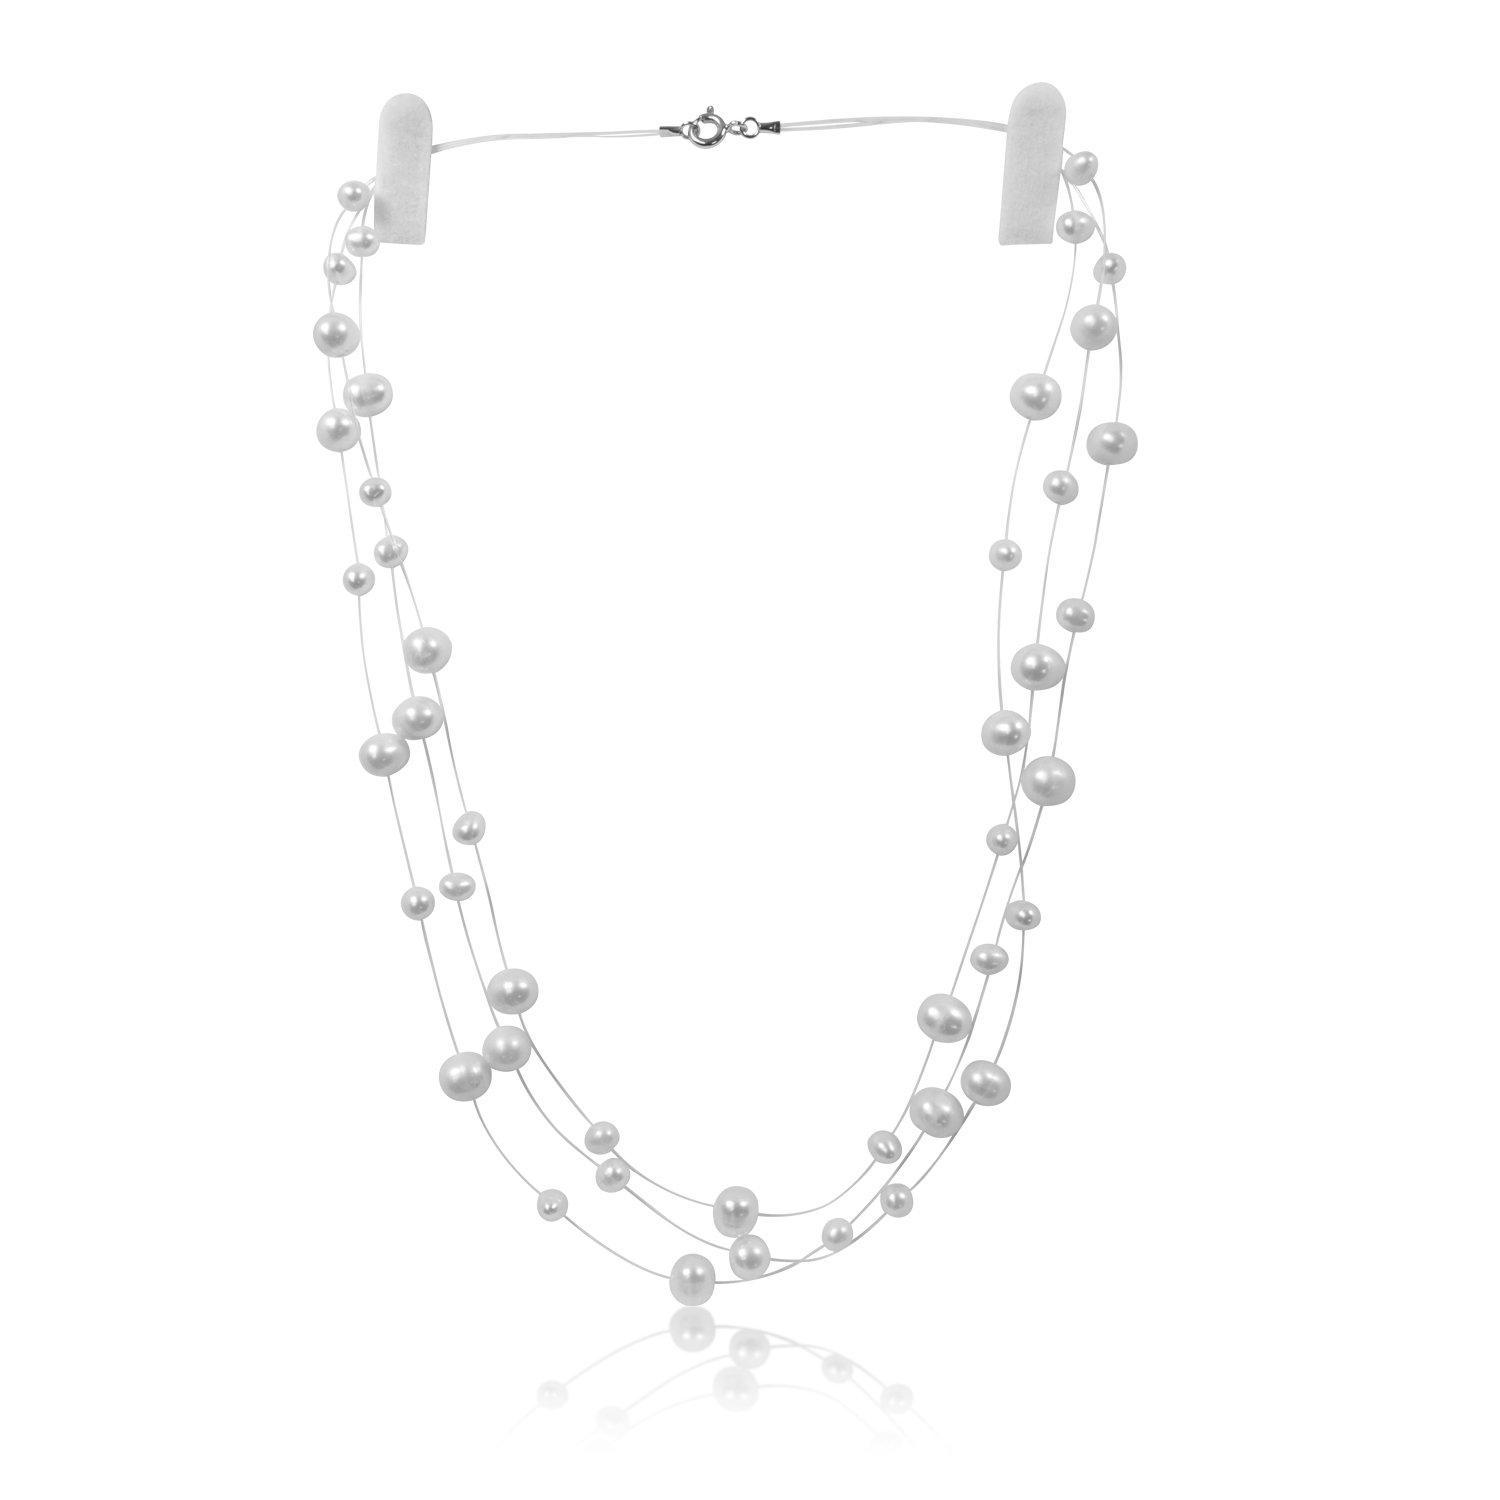 PearlsNSilver Sterling Silver Cultured Bridal White Pearl Illusion Necklace Earrings 18'' 20'' 3 or 6 Strand (3 strands 16'' - 18'')